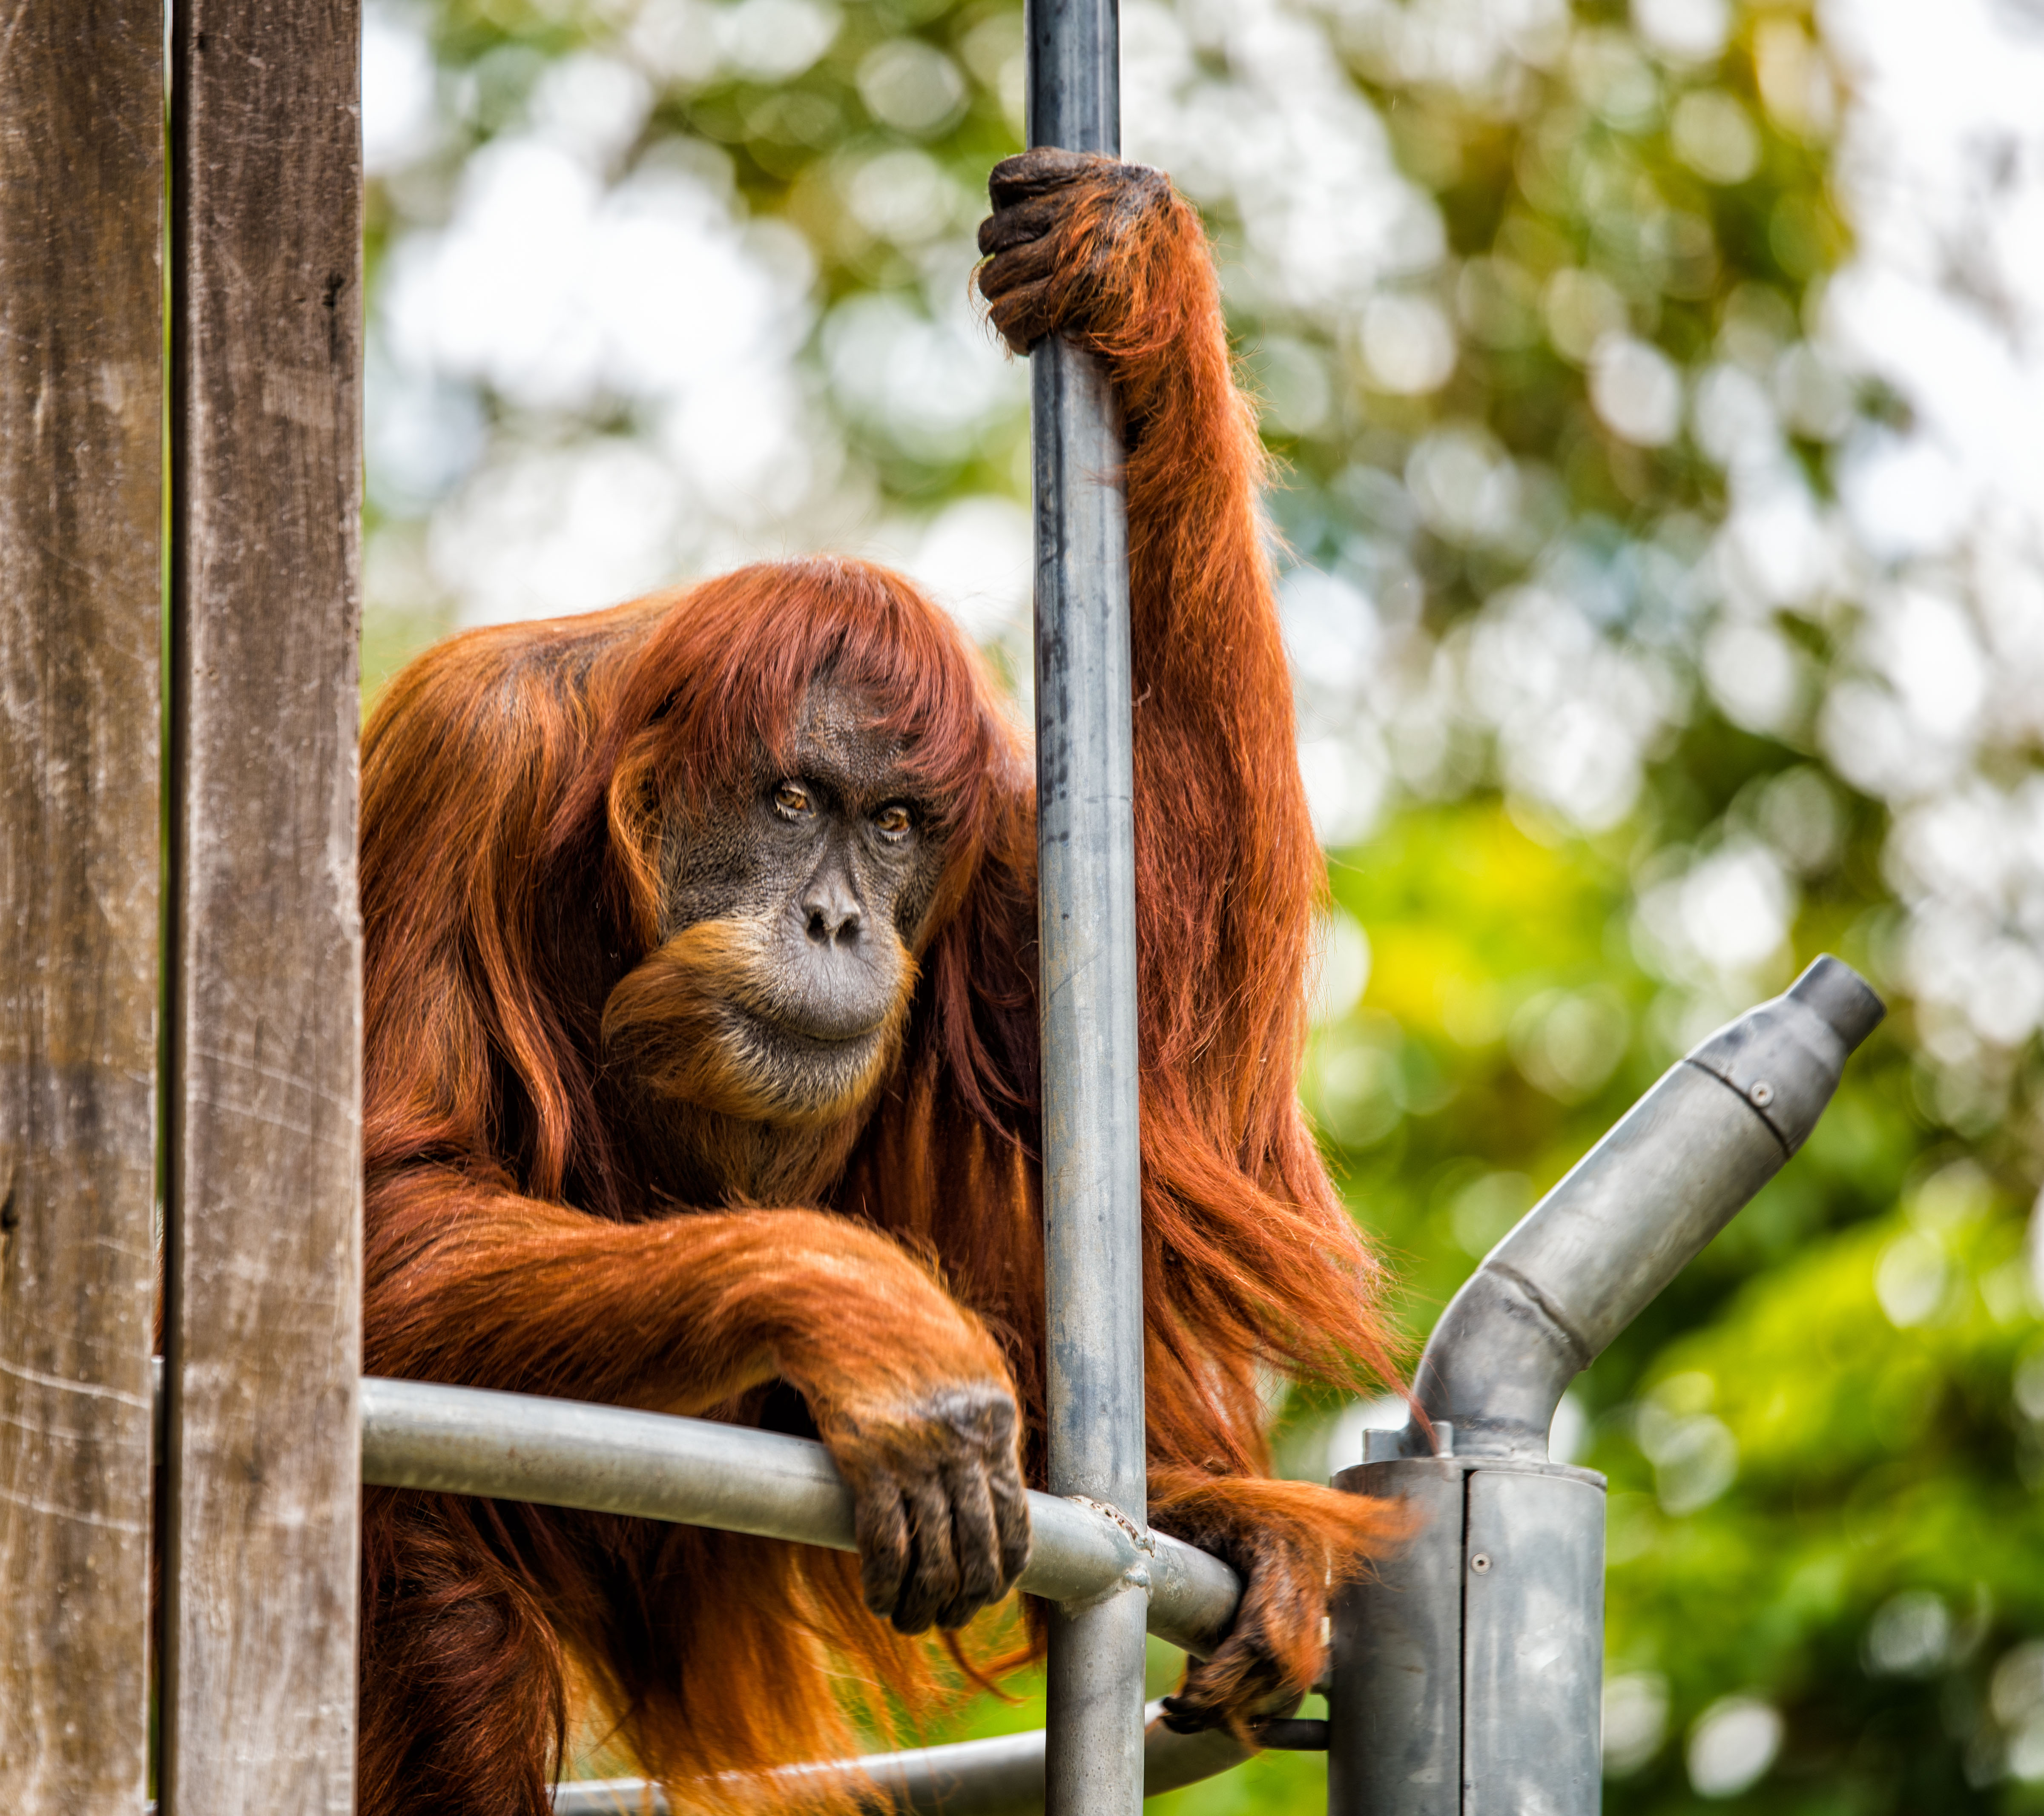 Puan the  grand old lady  of Perth Zoo died 19 June, 2018, at the age of 65. She was the world's oldest known Sumatran orangutan and her legacy of 54 descendants helped save the species.